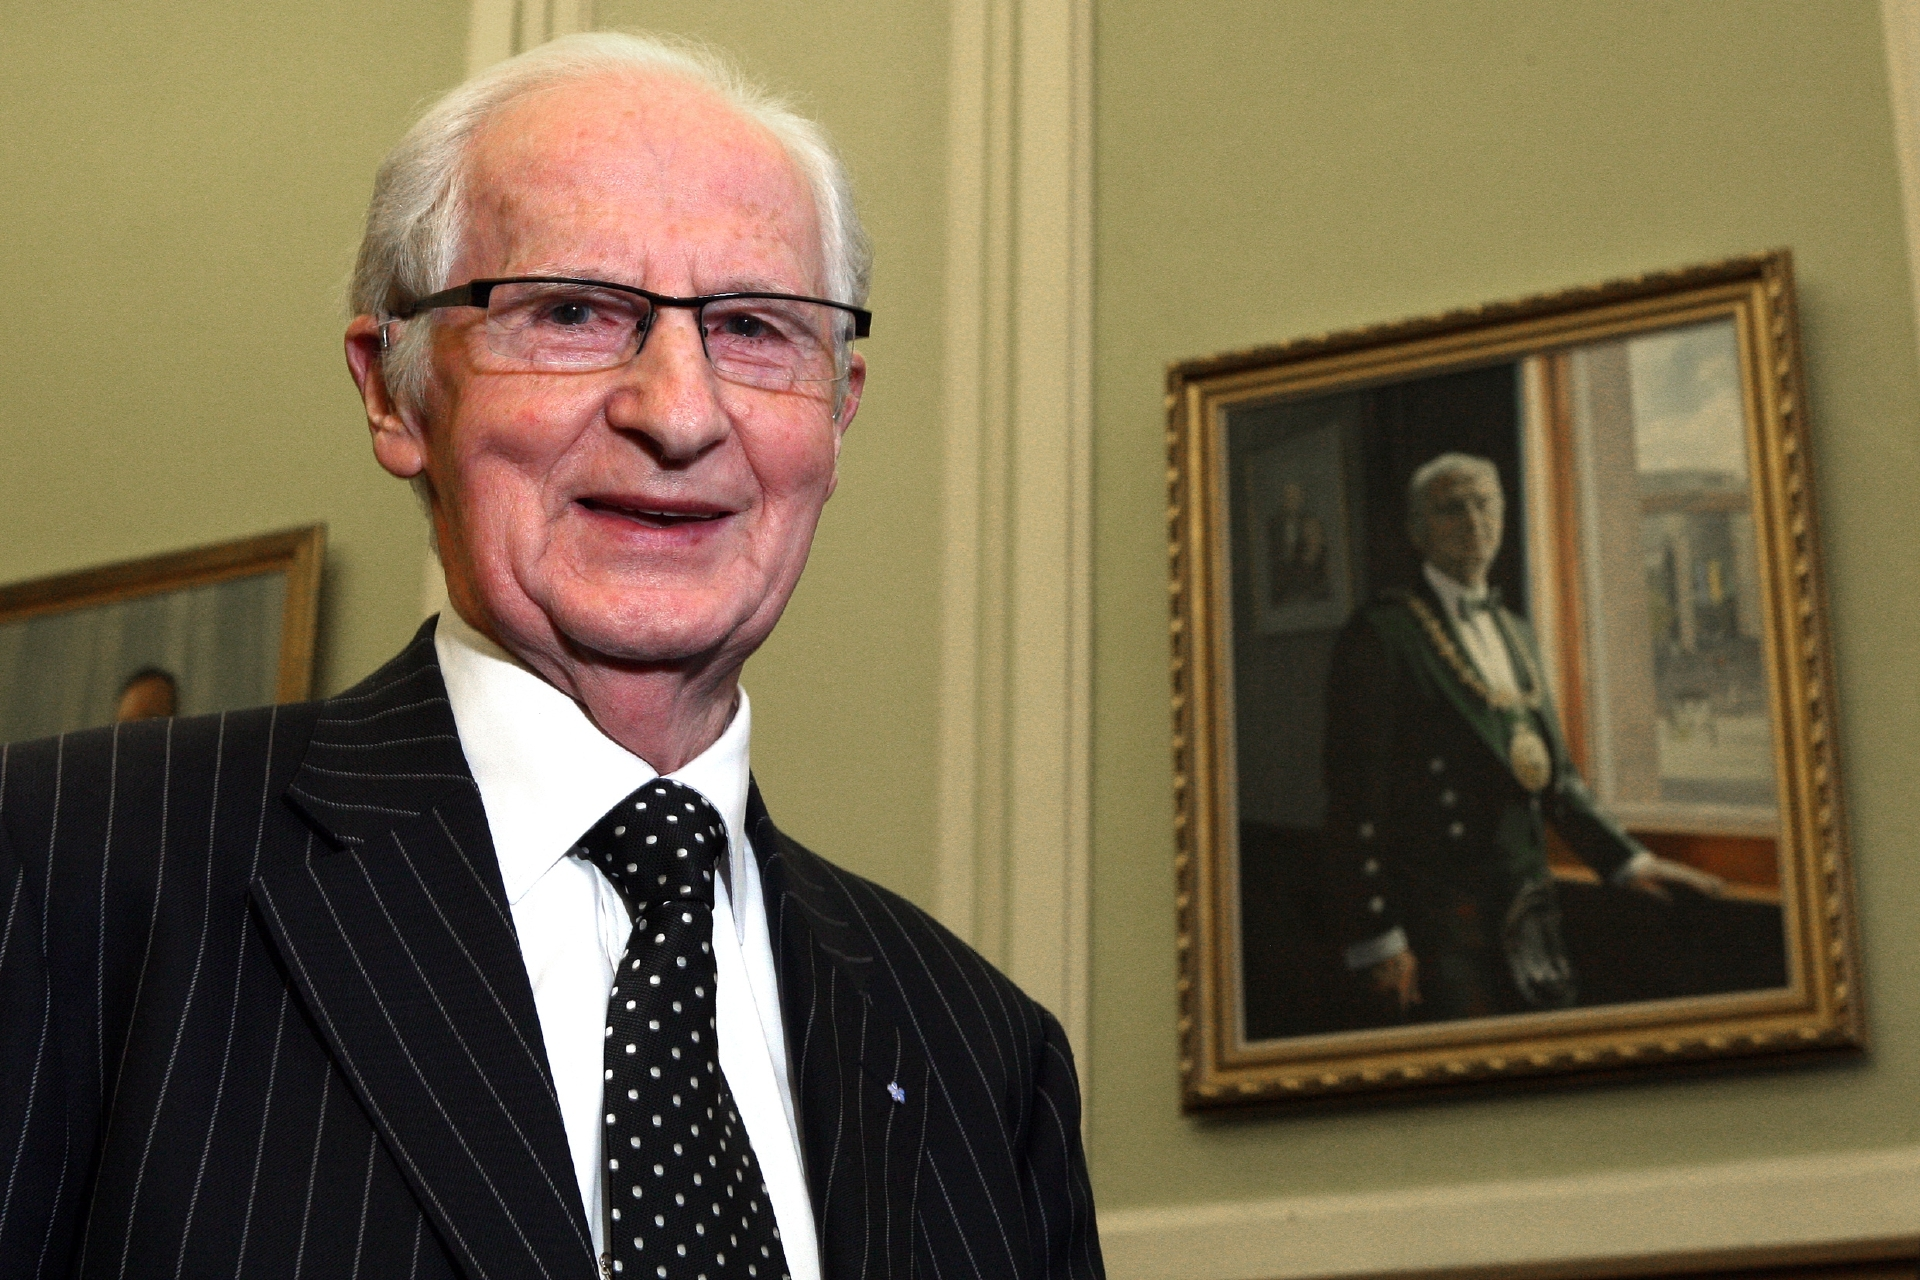 John Letford pictured at City Chambers at the unveiling of his civic portrait.